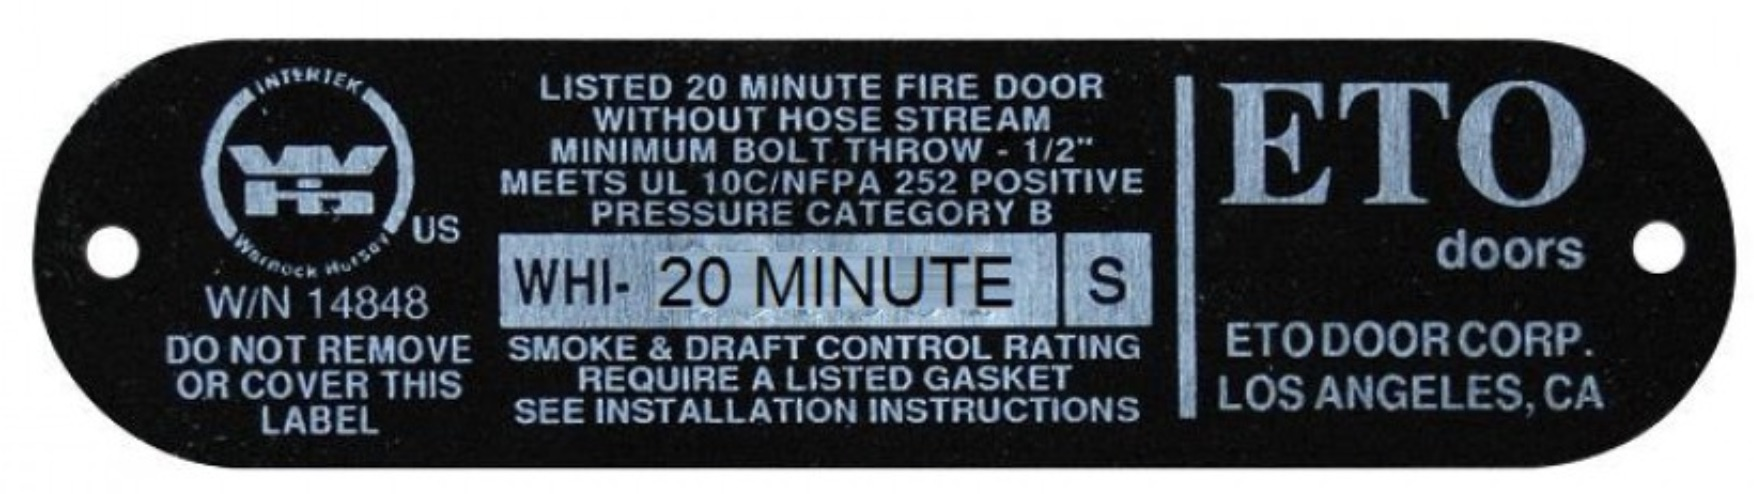 A garage fire door must swing inside the home, have auto close hinges, tight fitting weatherstripping and must not have a pet door installed.